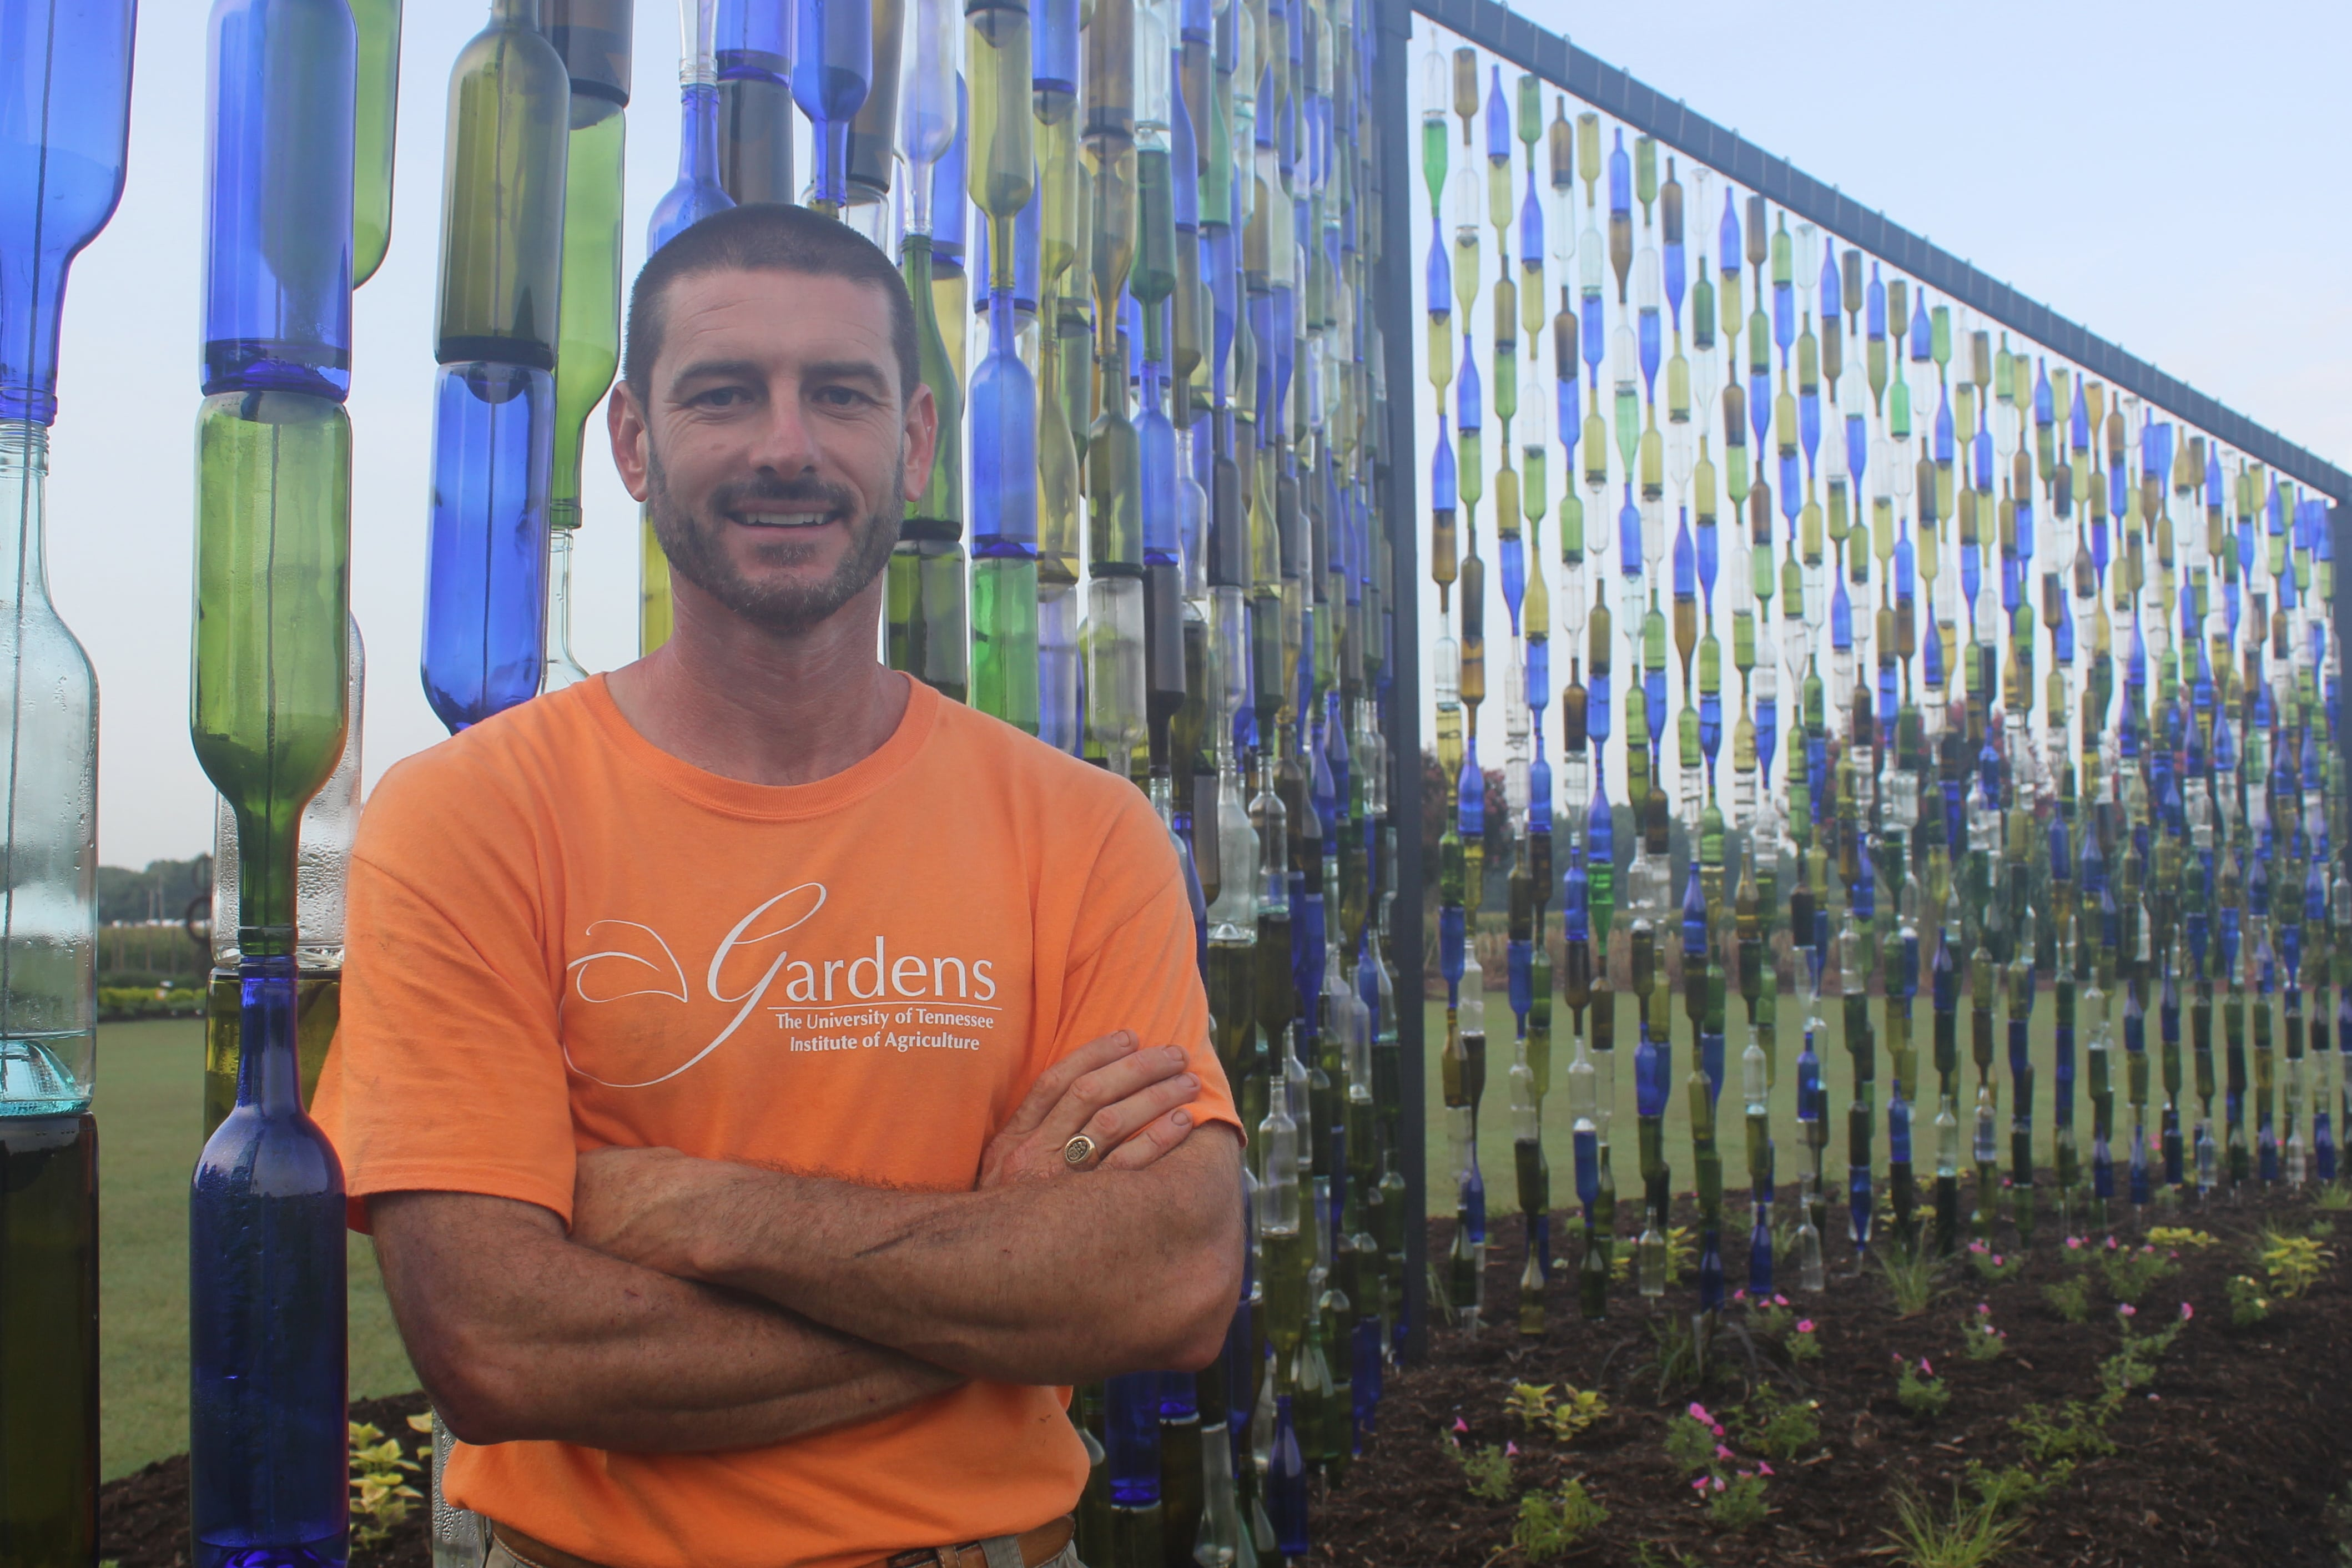 A Year in the Garden with Jason Reeves, UT Gardens